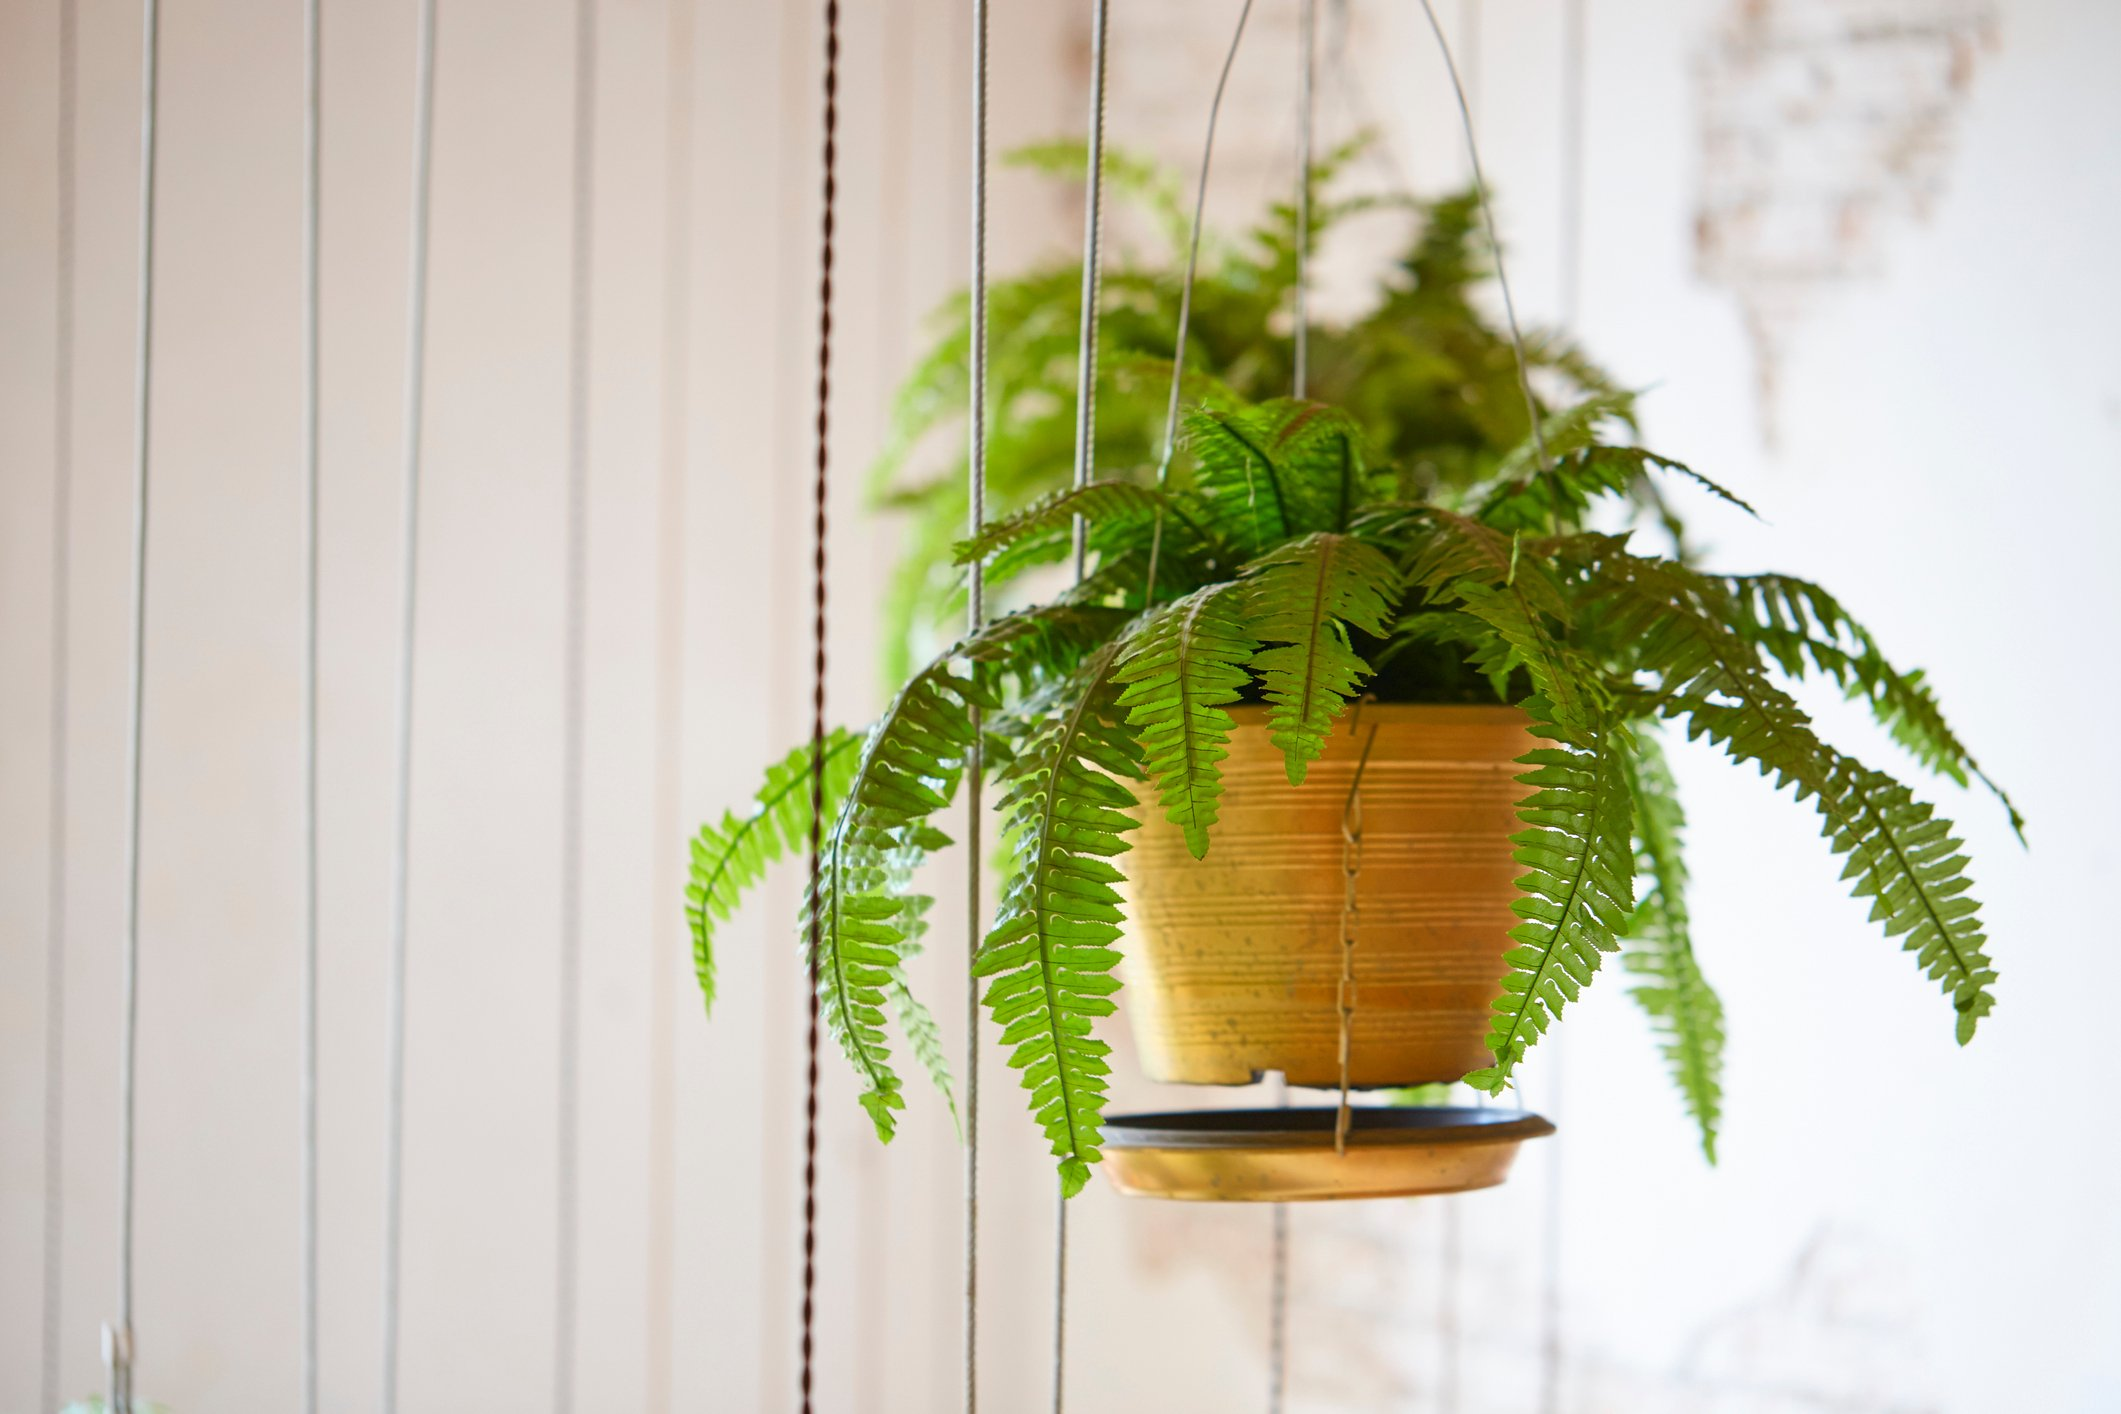 Pot of hanging Boston fern, hanging green plant decoration